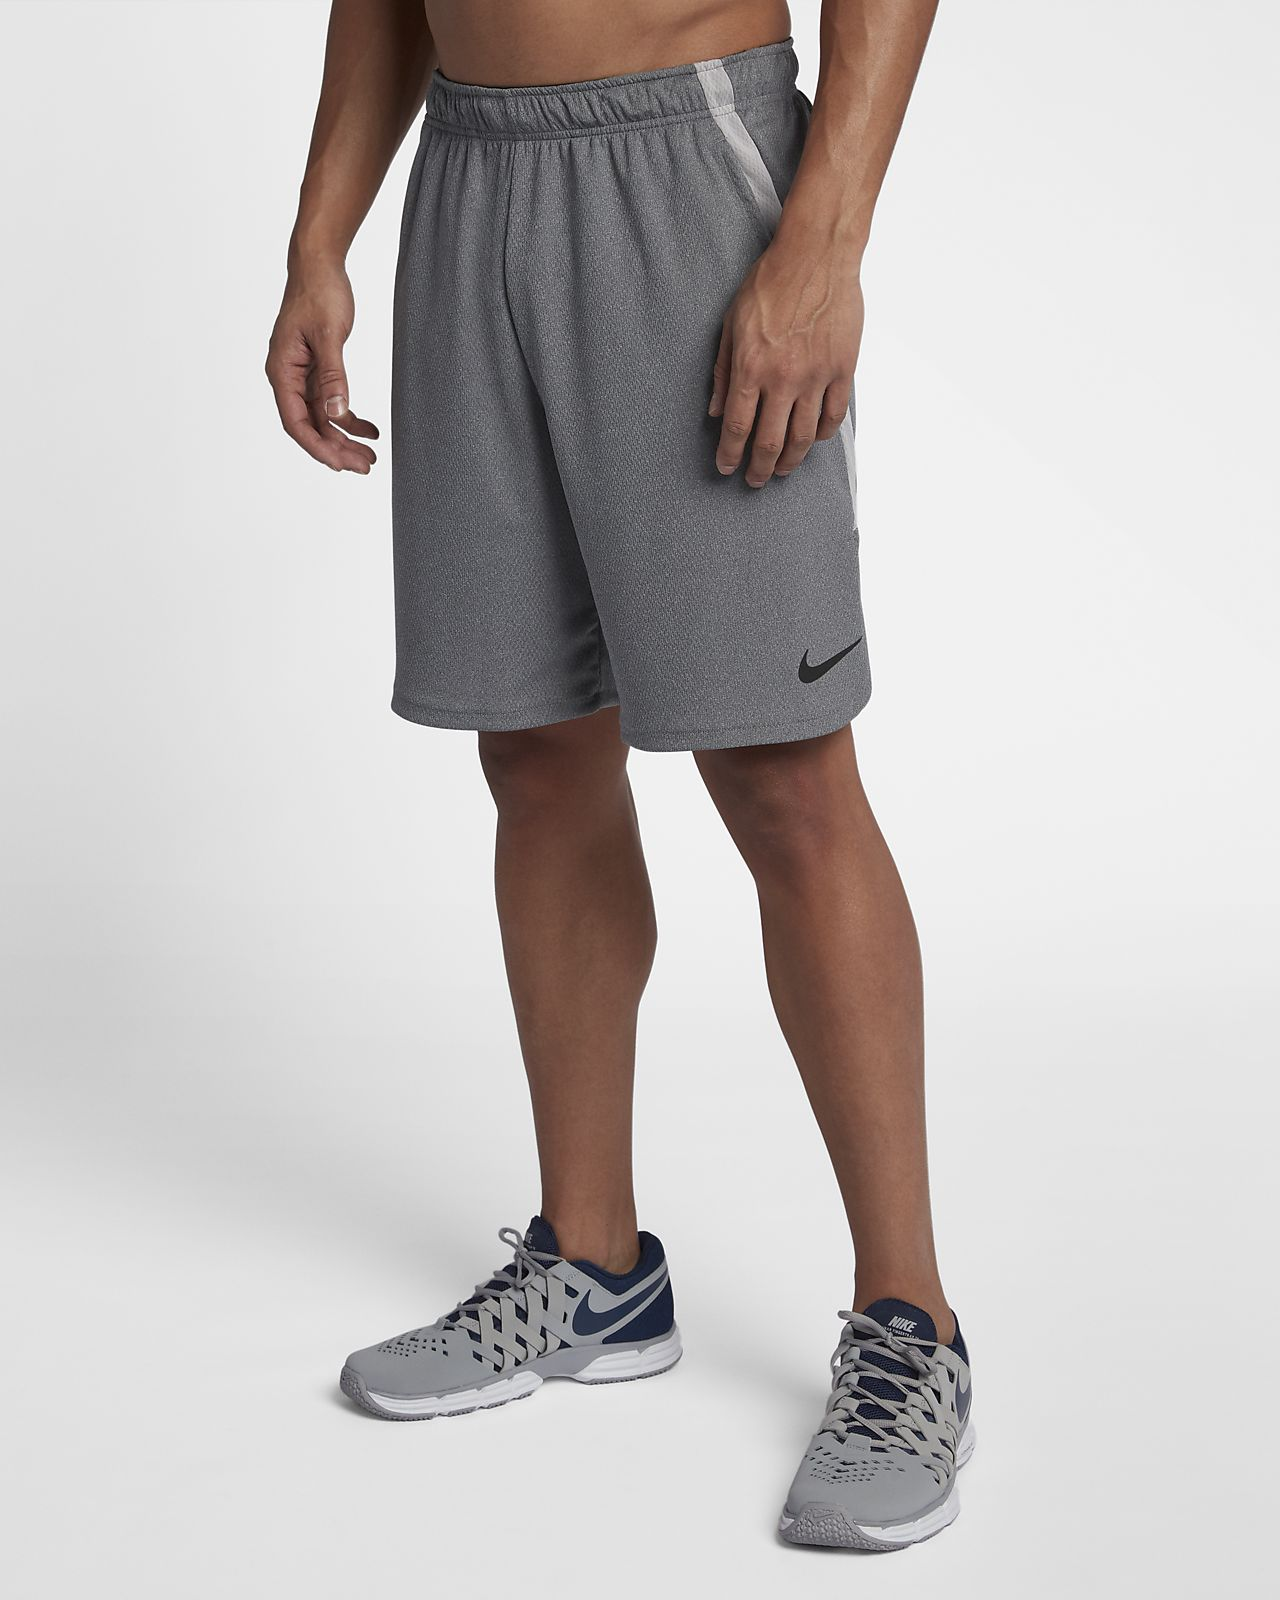 Men's 923cm Nike Fit ShortsPt Woven Training Dri 8knw0PXNO